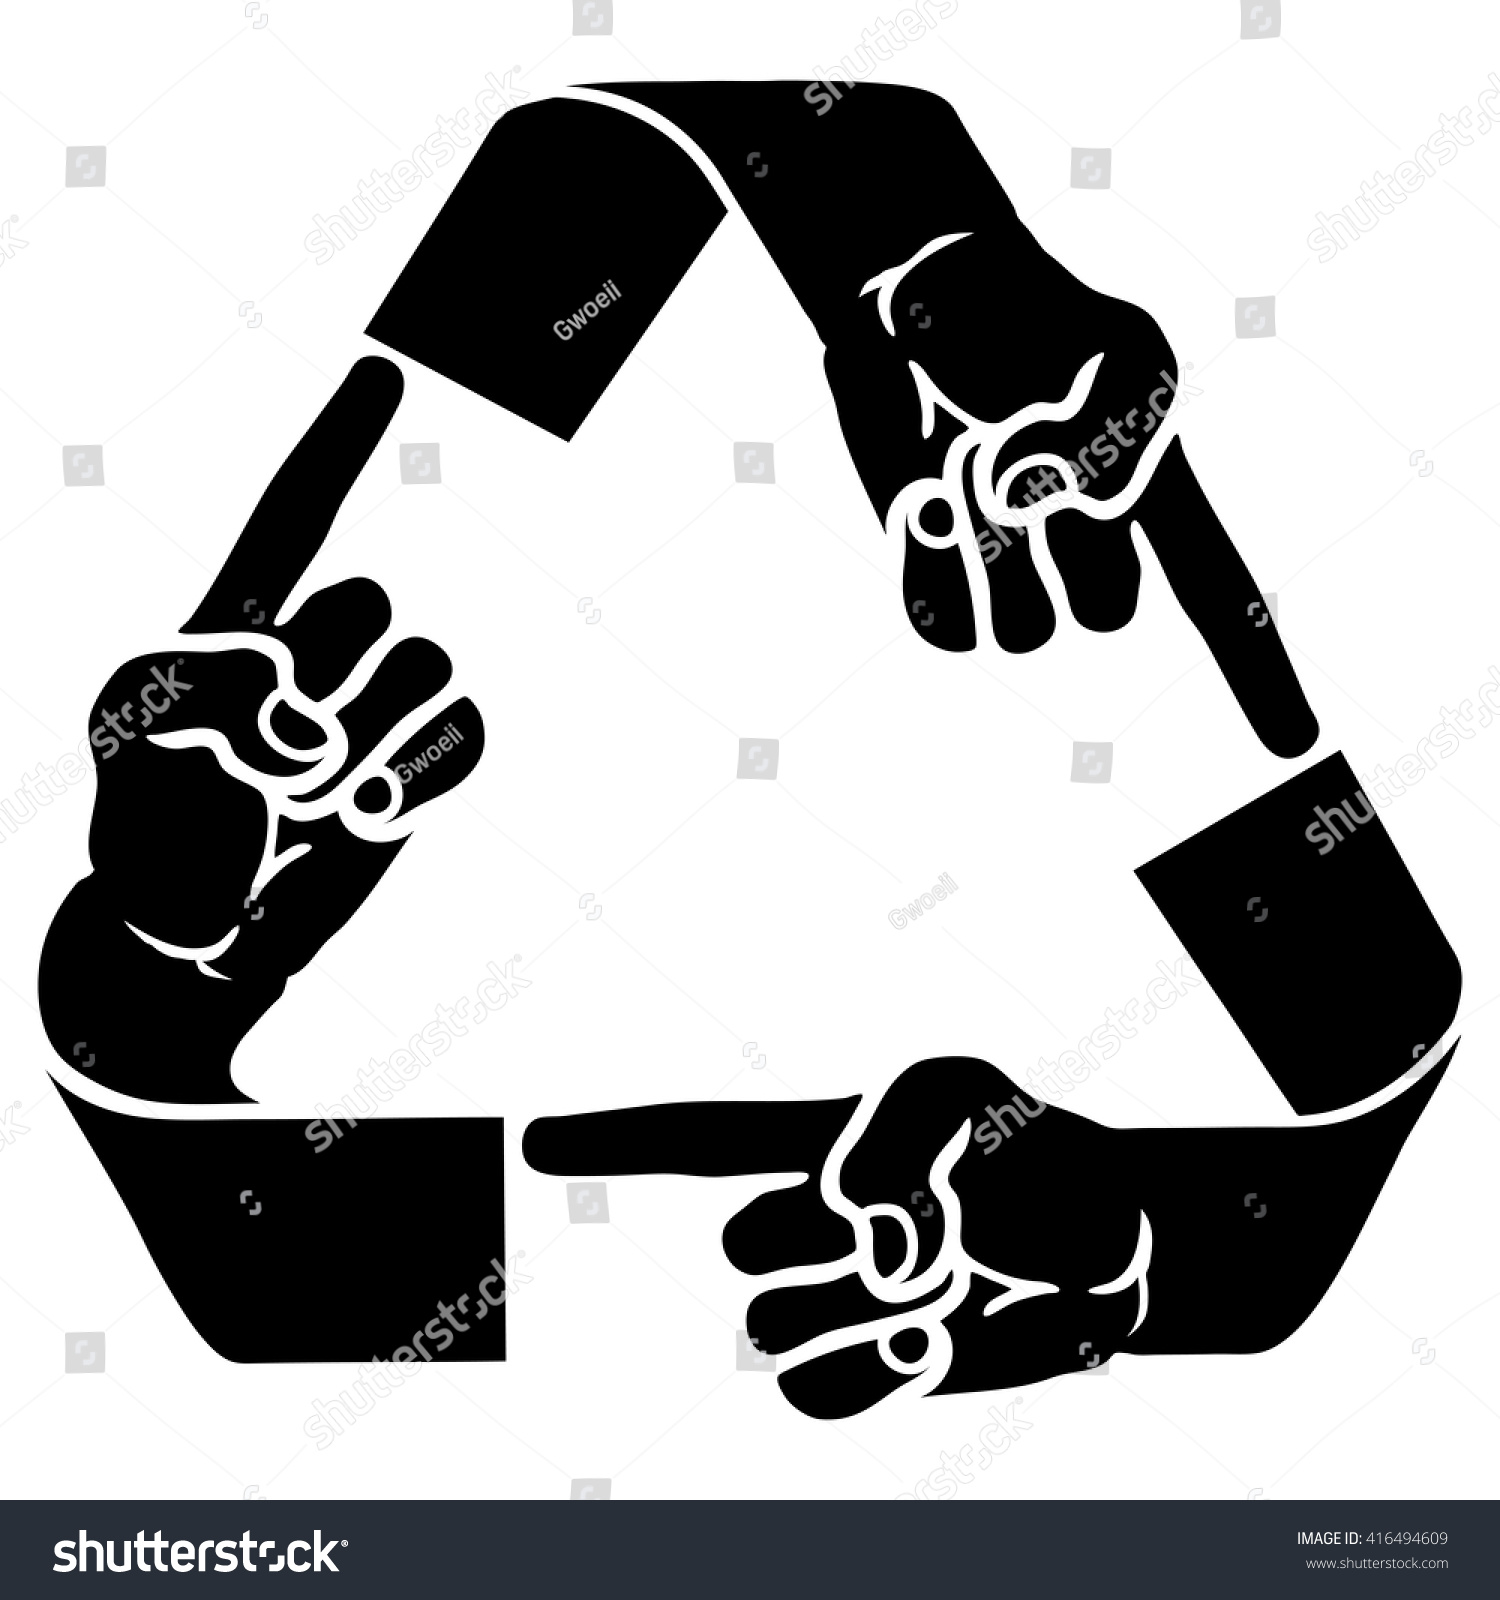 Vector Illustration Recycle Symbol Human Fingers Stock Vector